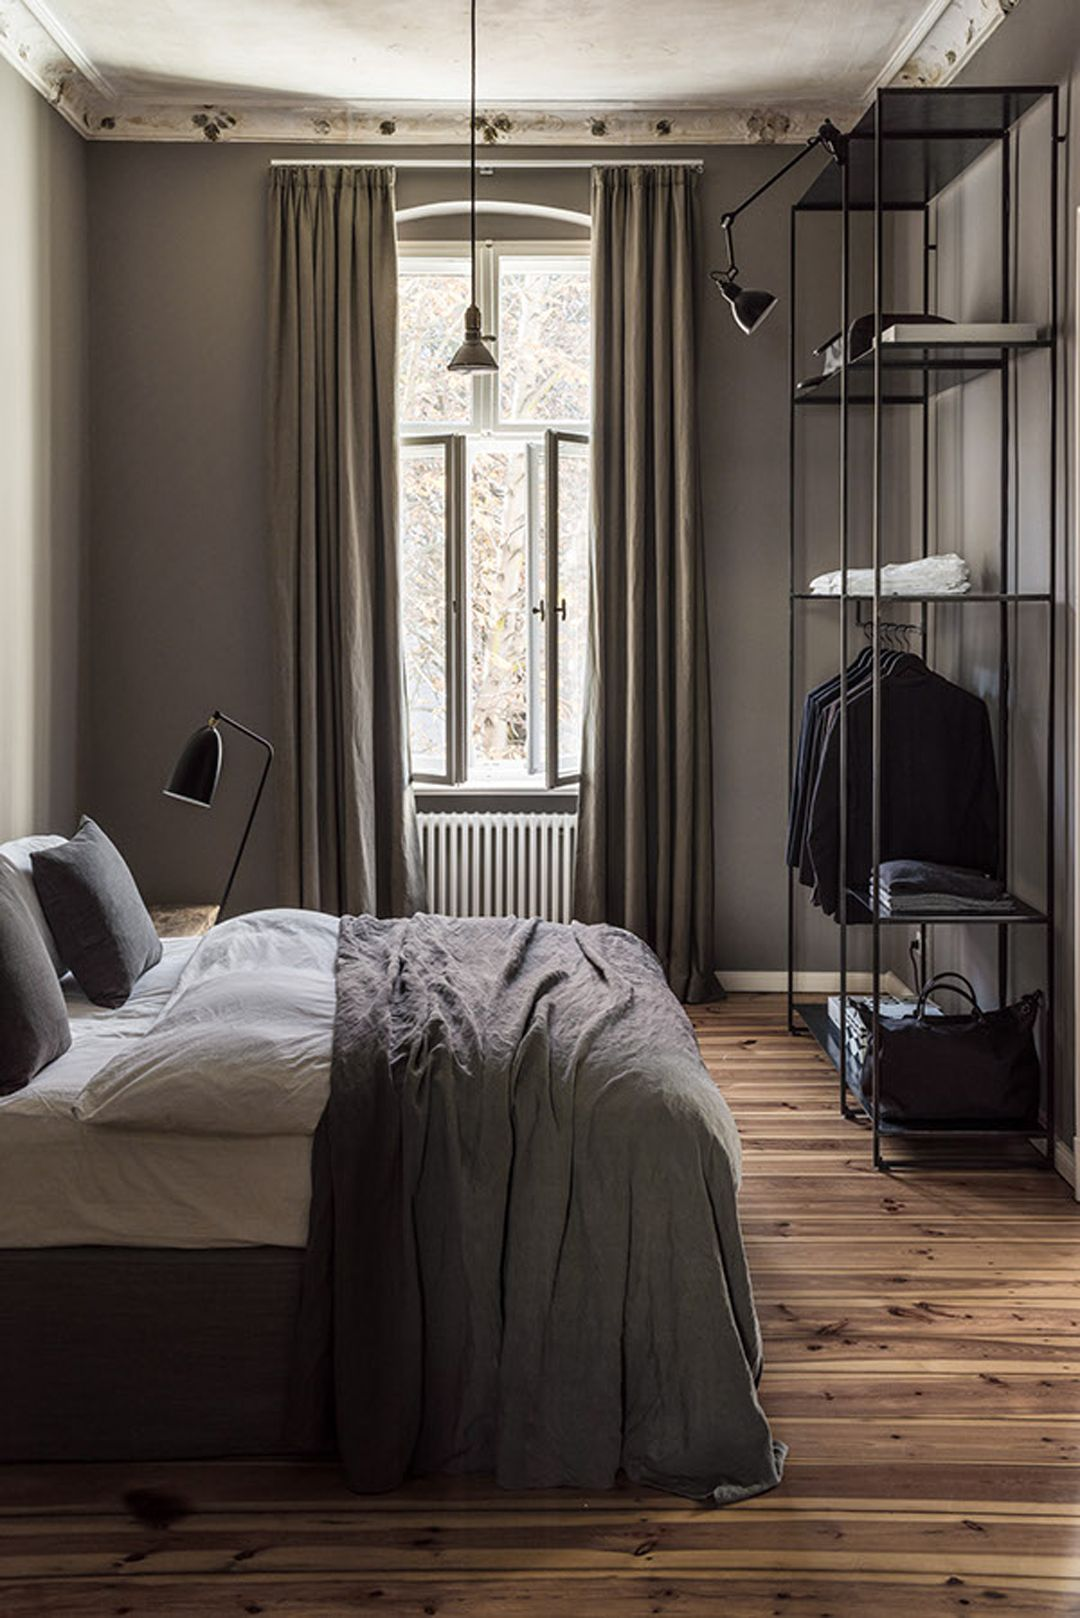 The 5 Rules Of Bedroom Styling (Bungalow5) | Bedrooms, Apartment ...